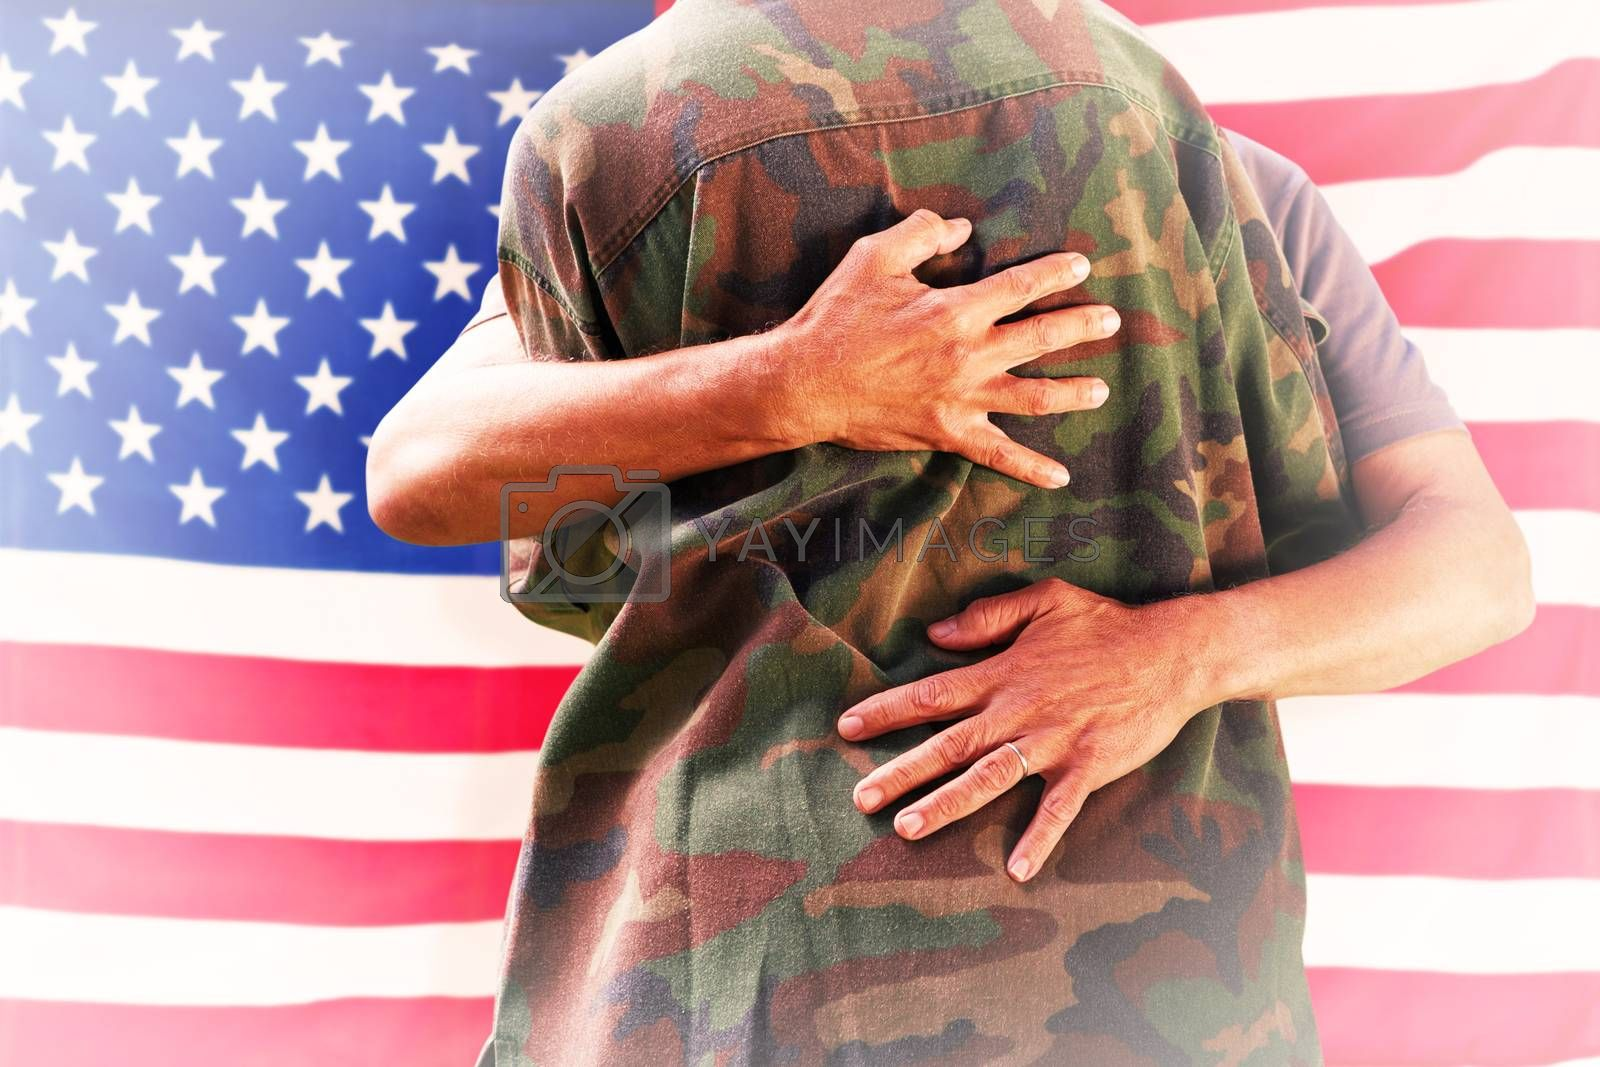 Composite image of solider reunited with father by Wavebreakmedia